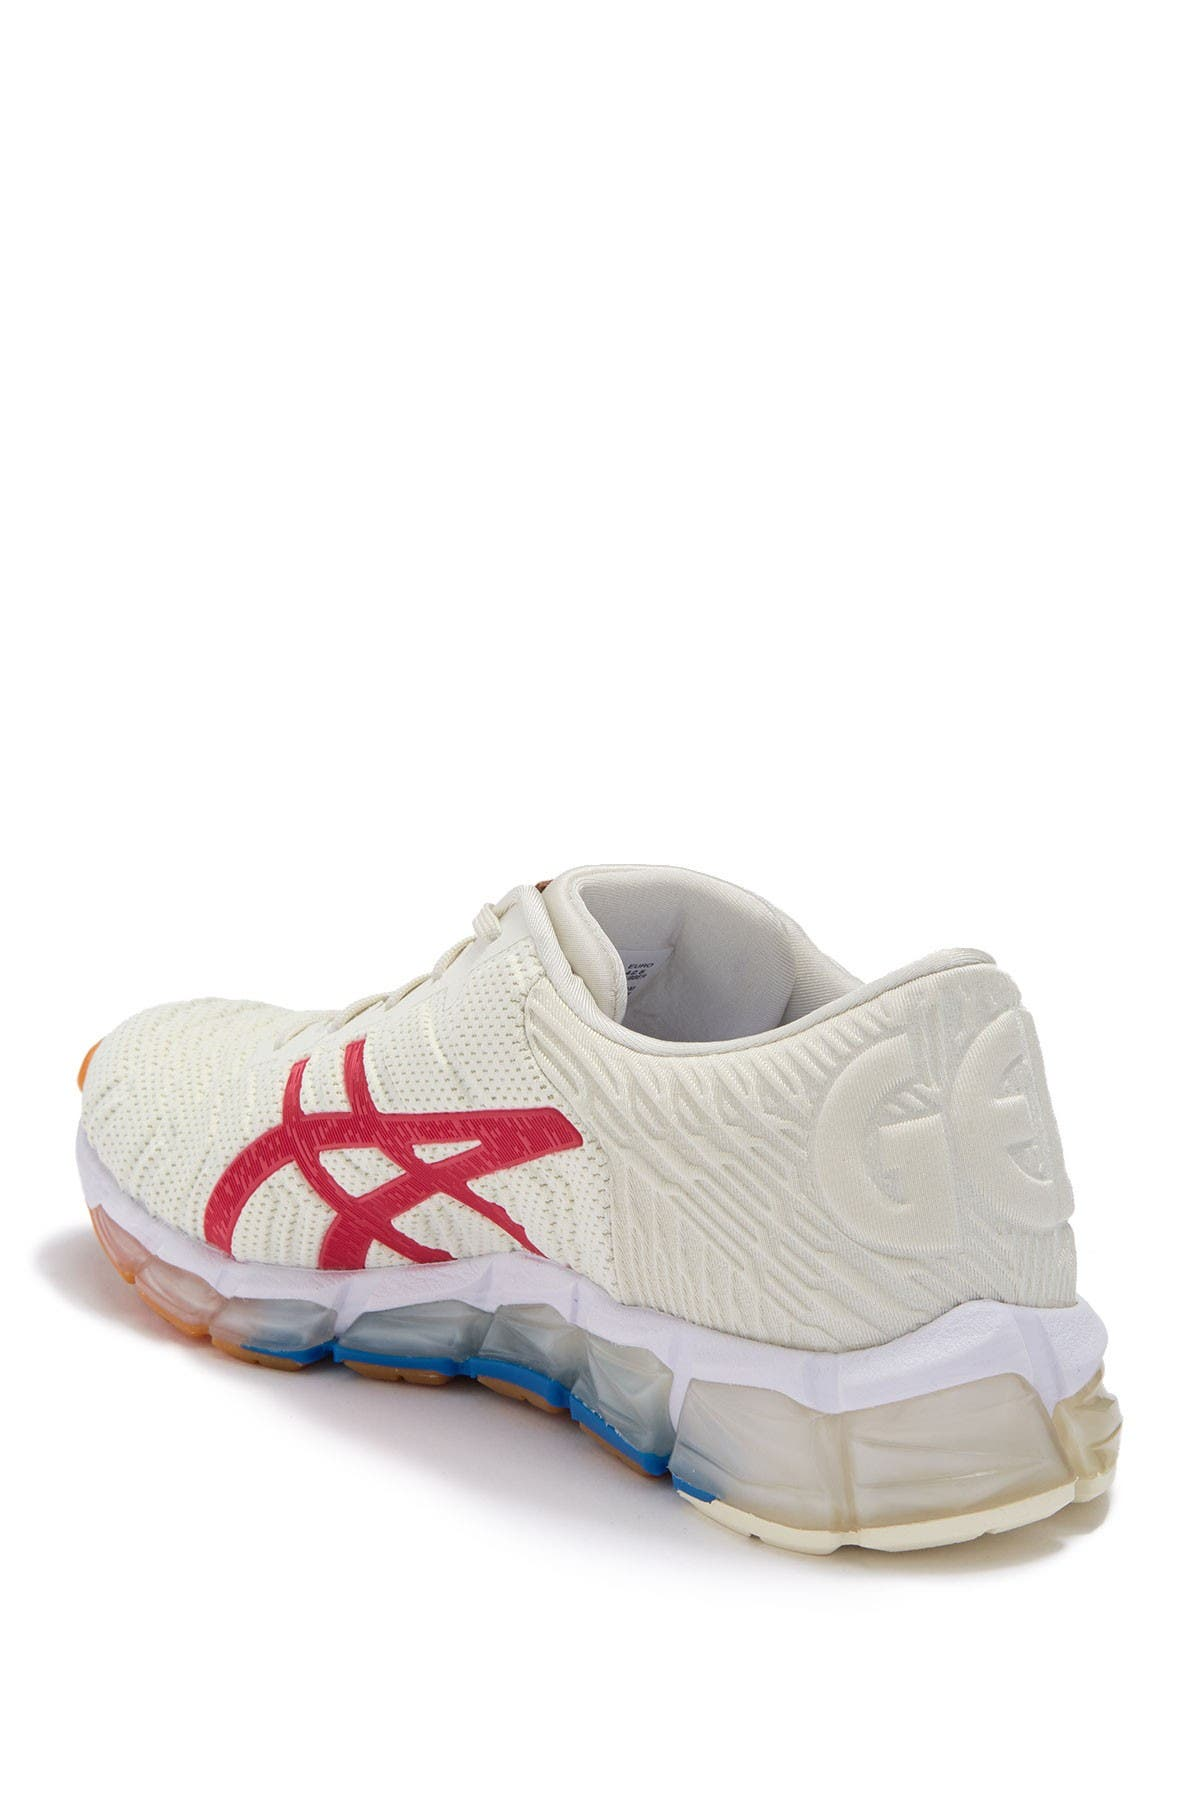 Image of ASICS GEL-Quantum 360 5 Running Shoe